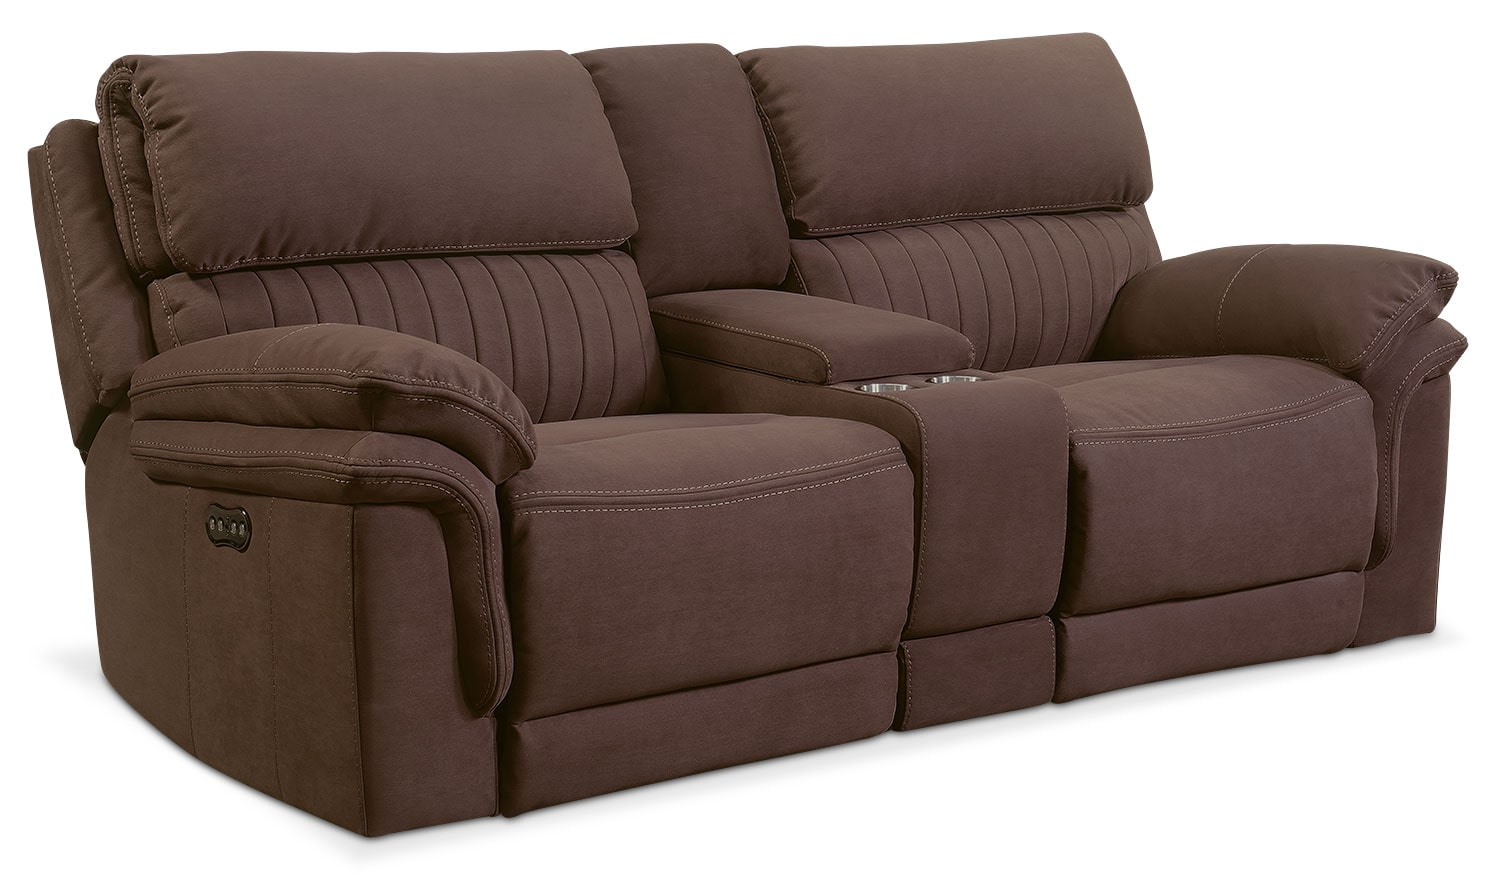 Bon Living Room Furniture   Monterey 3 Piece Power Reclining Sofa With Console    Mocha